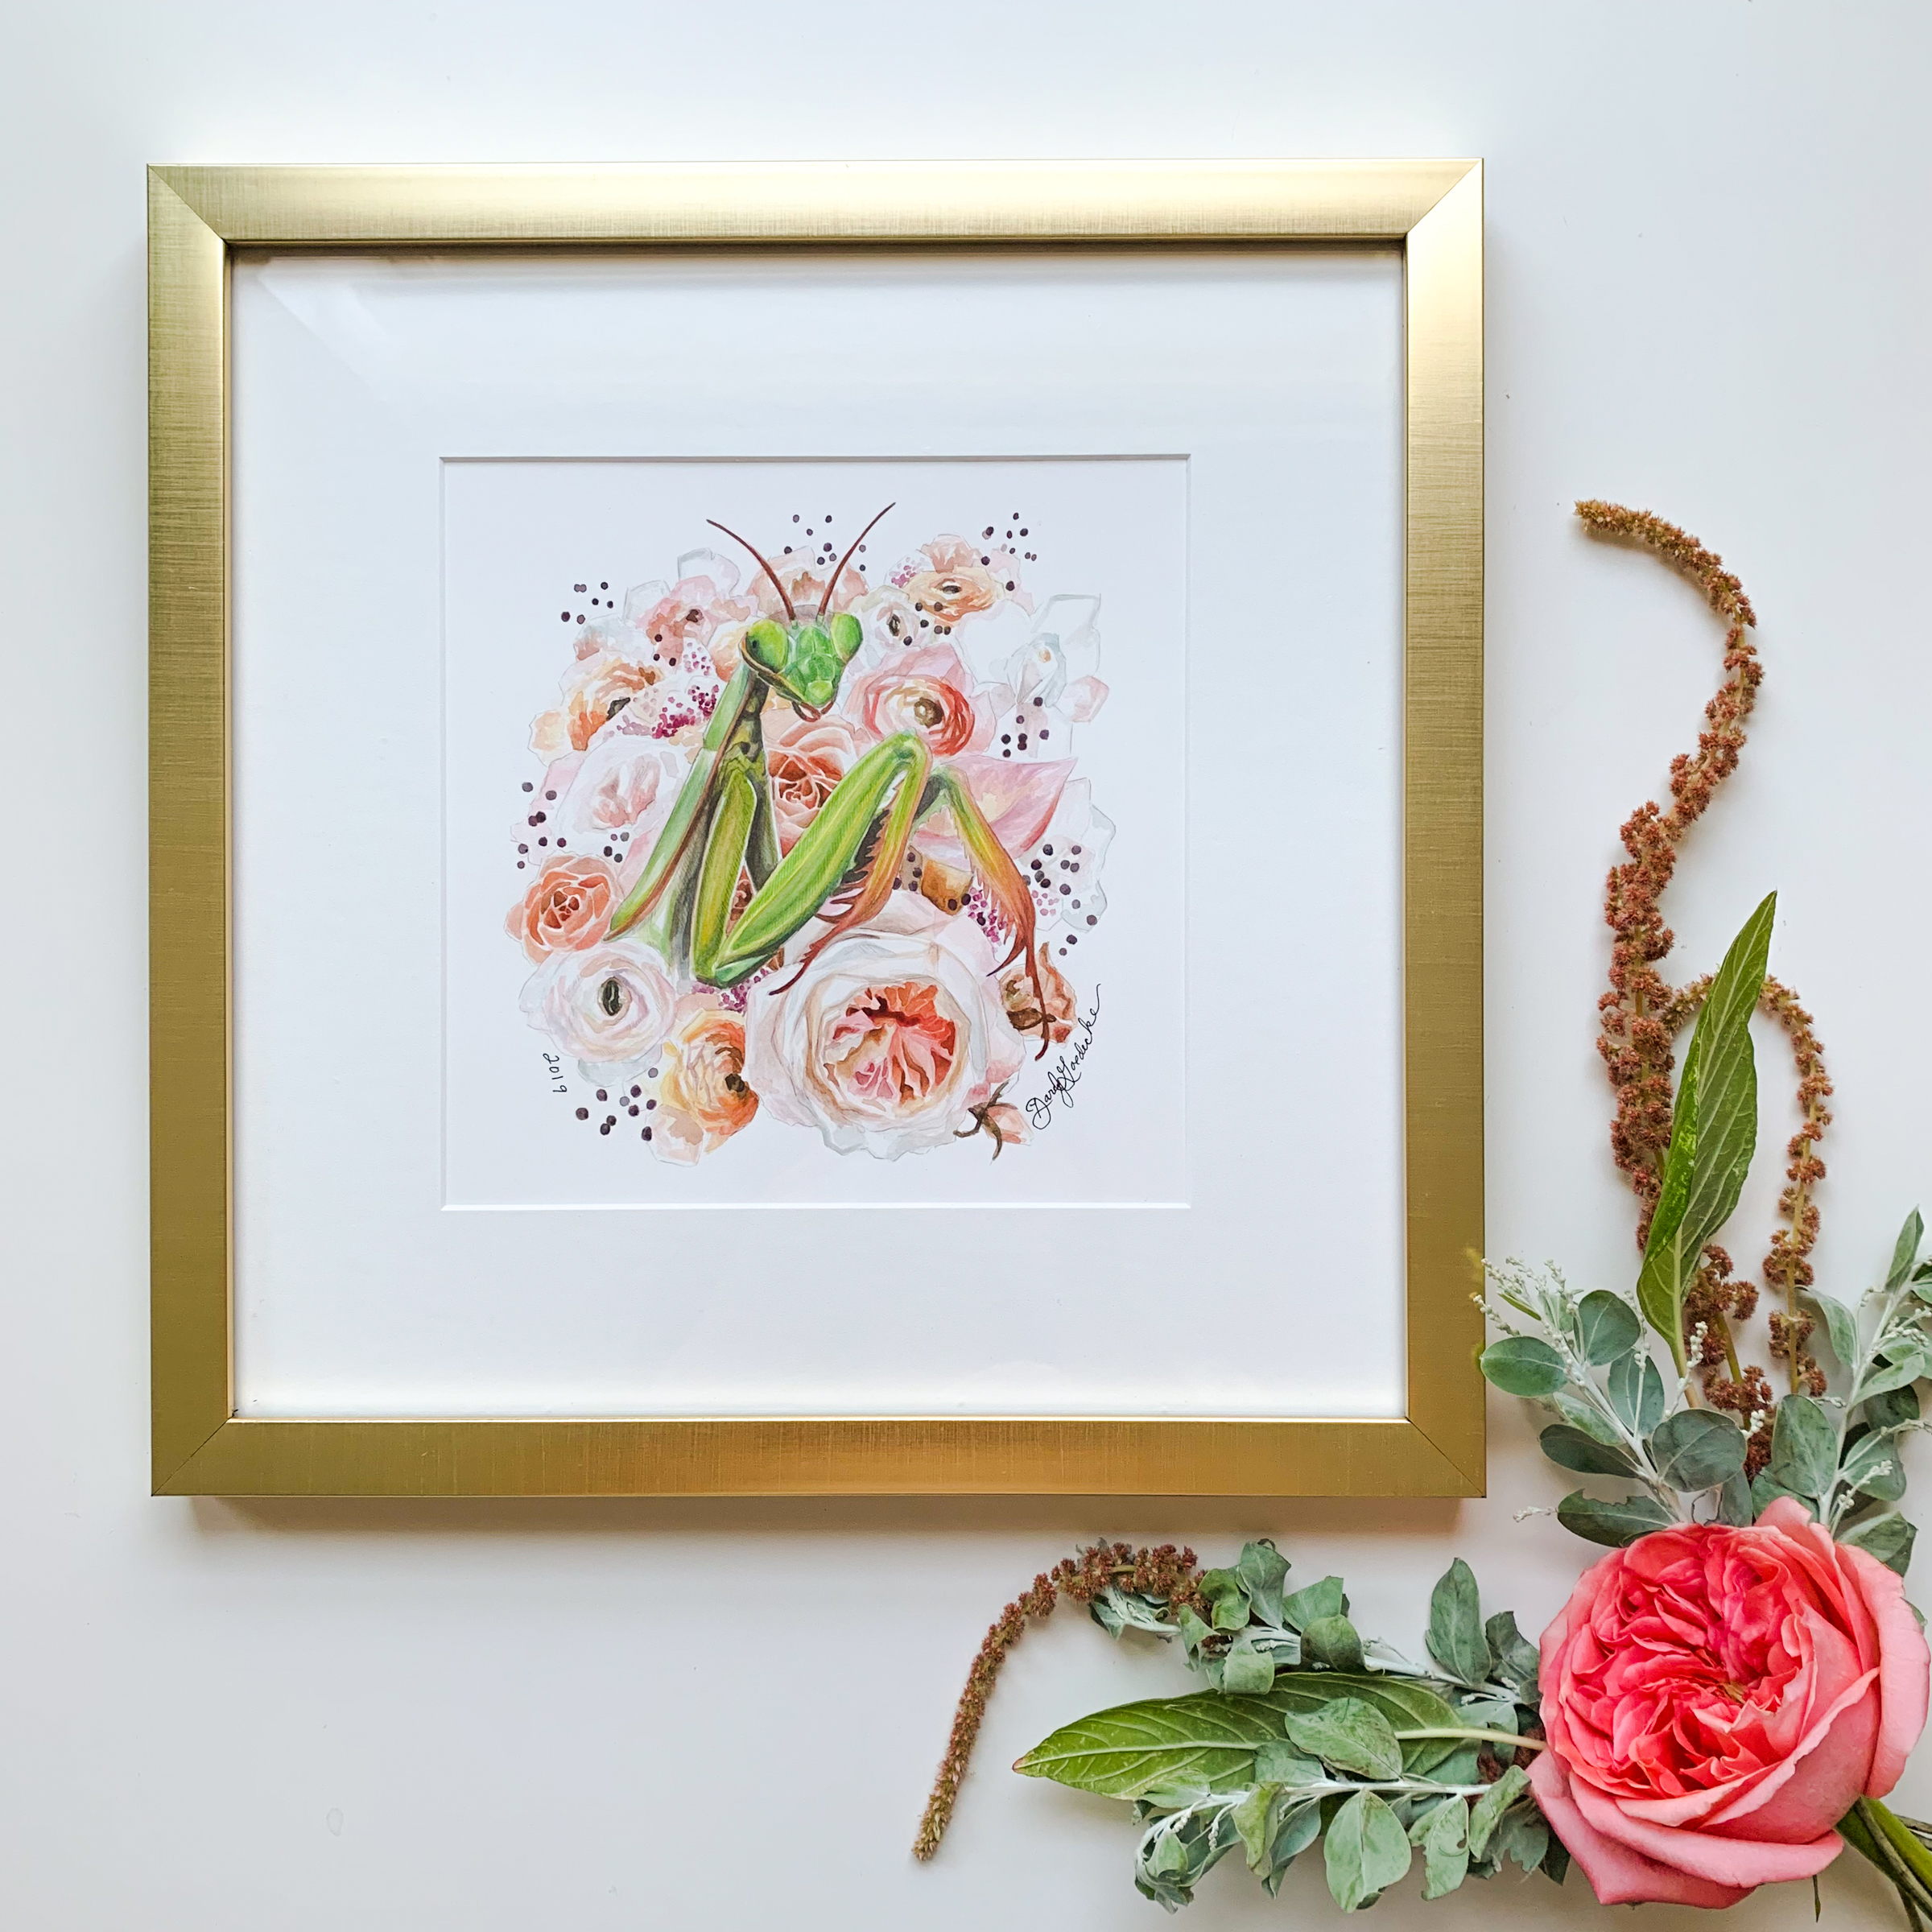 Mantis watercolor painting by Darcy Goedecke